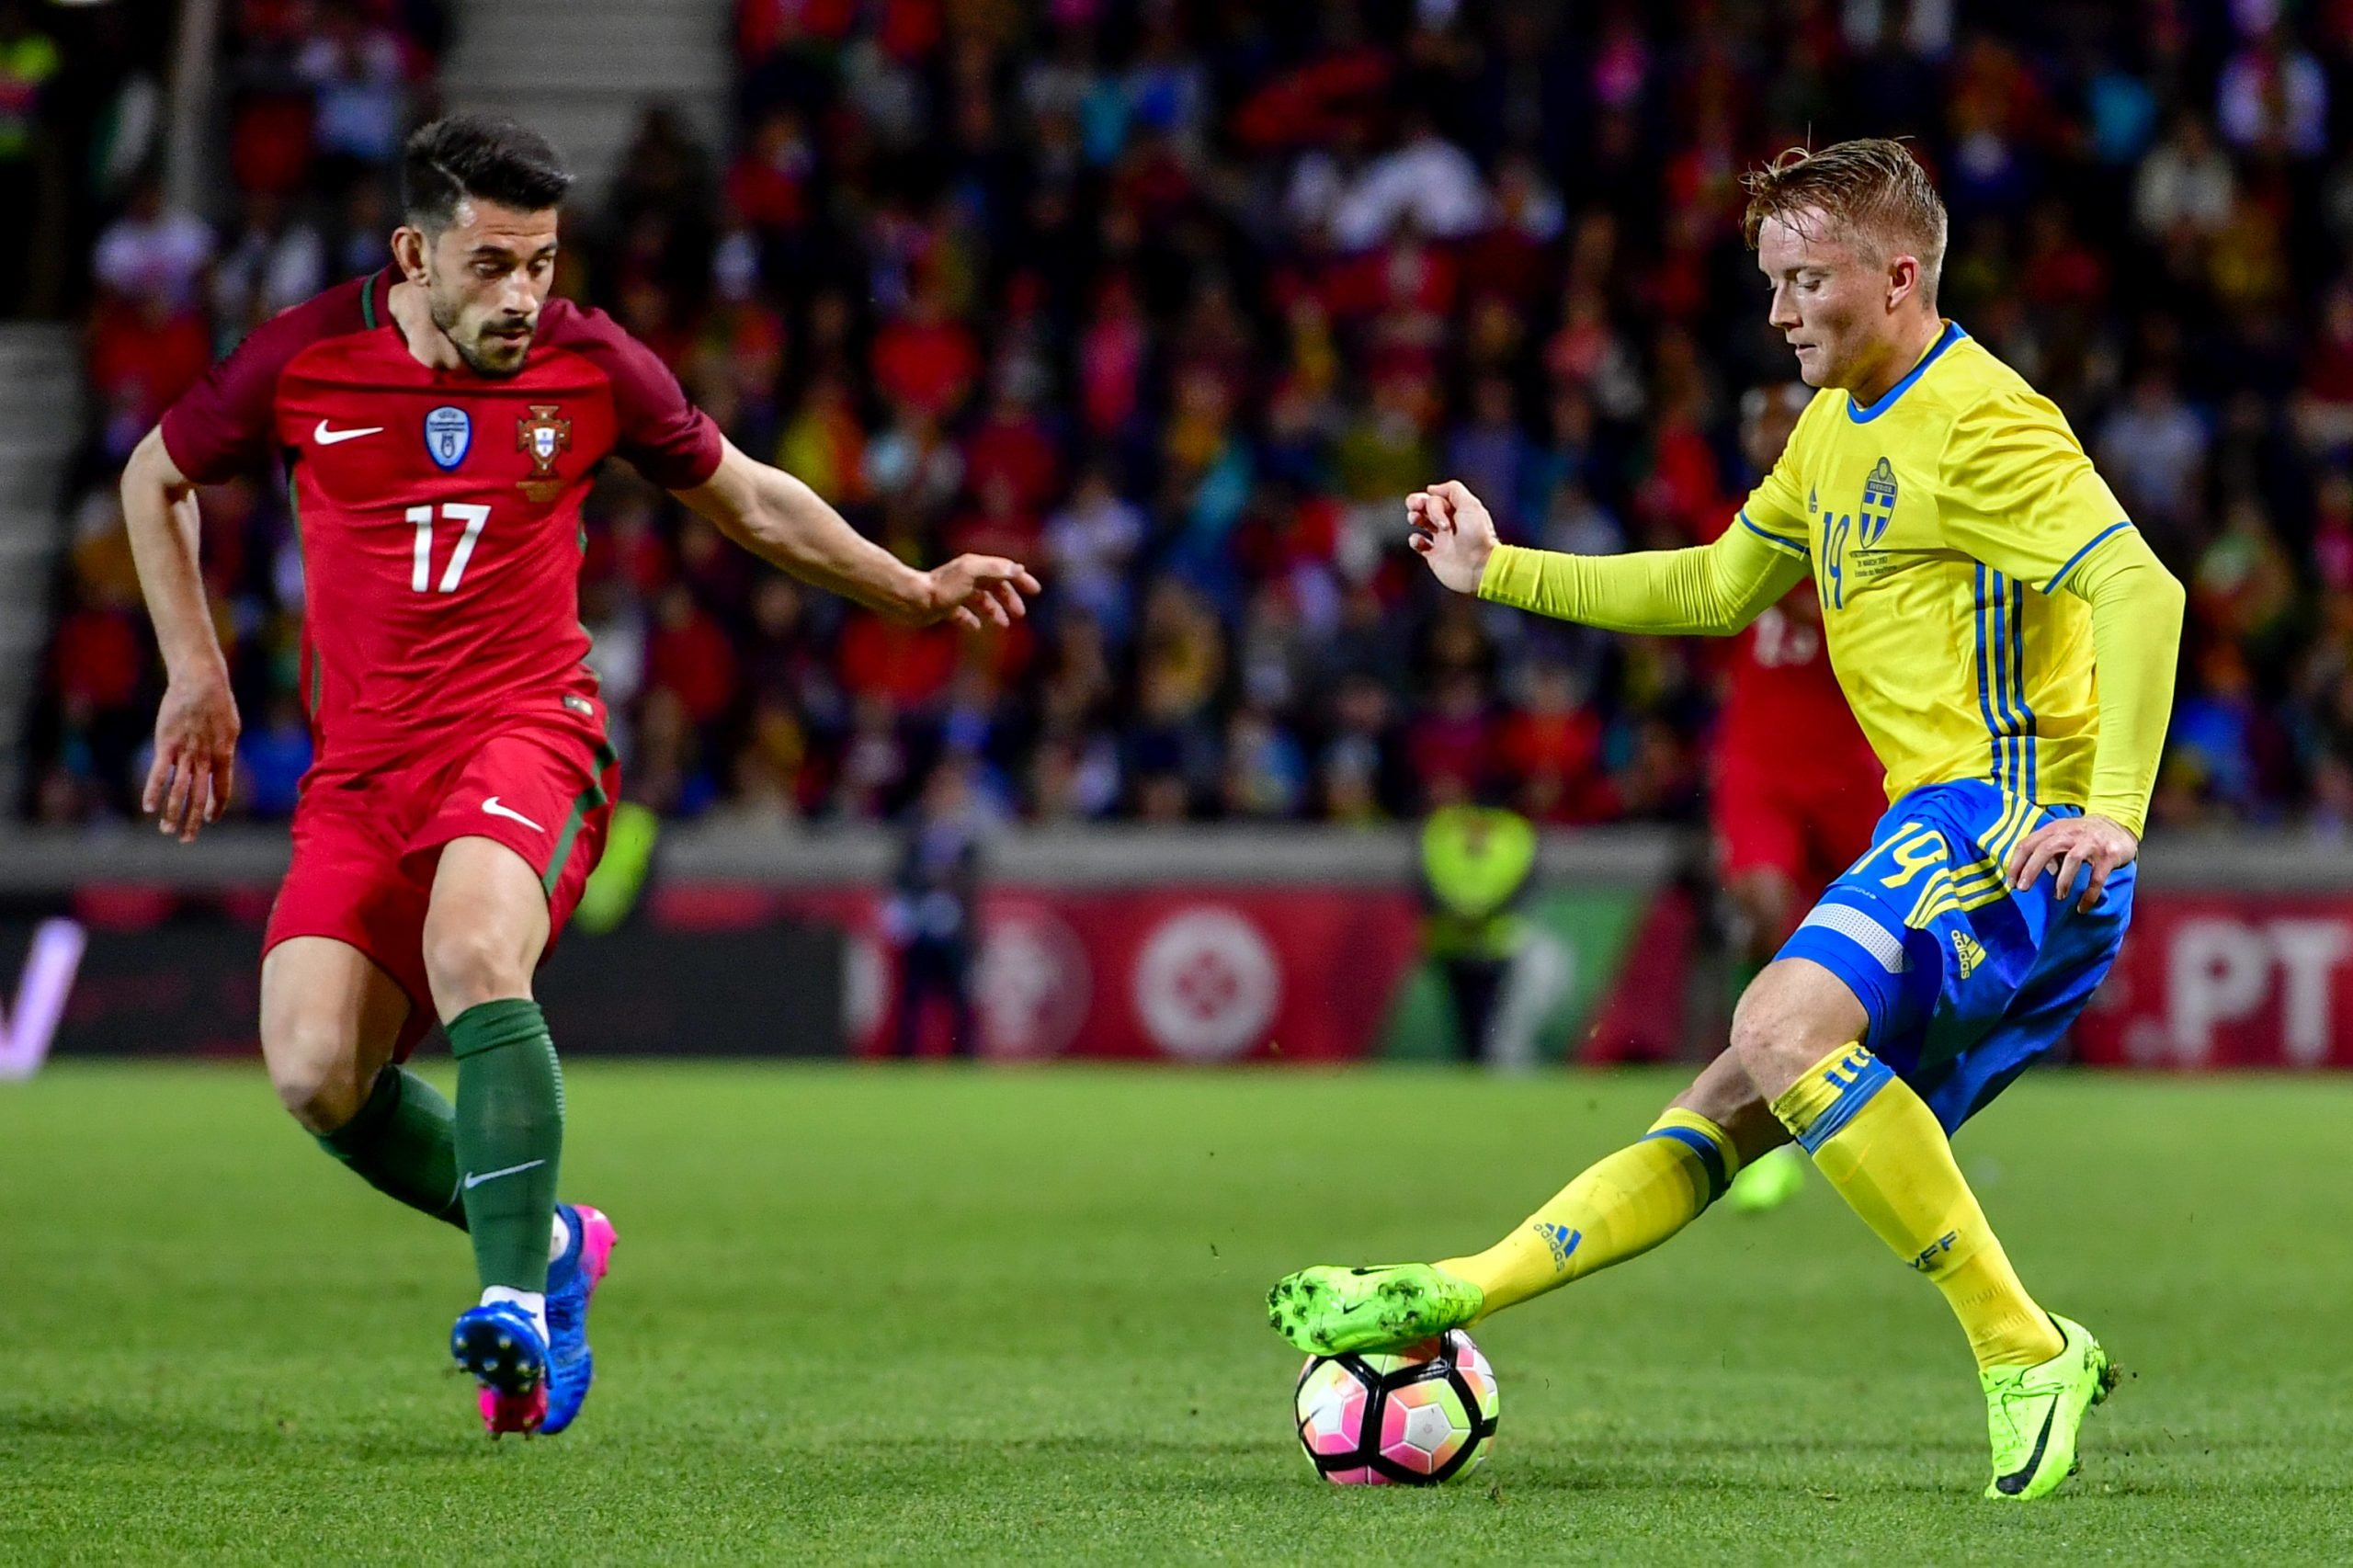 soi-keo-portugal-vs-sweden-luc-1h45-ngay-15-10-2020-2